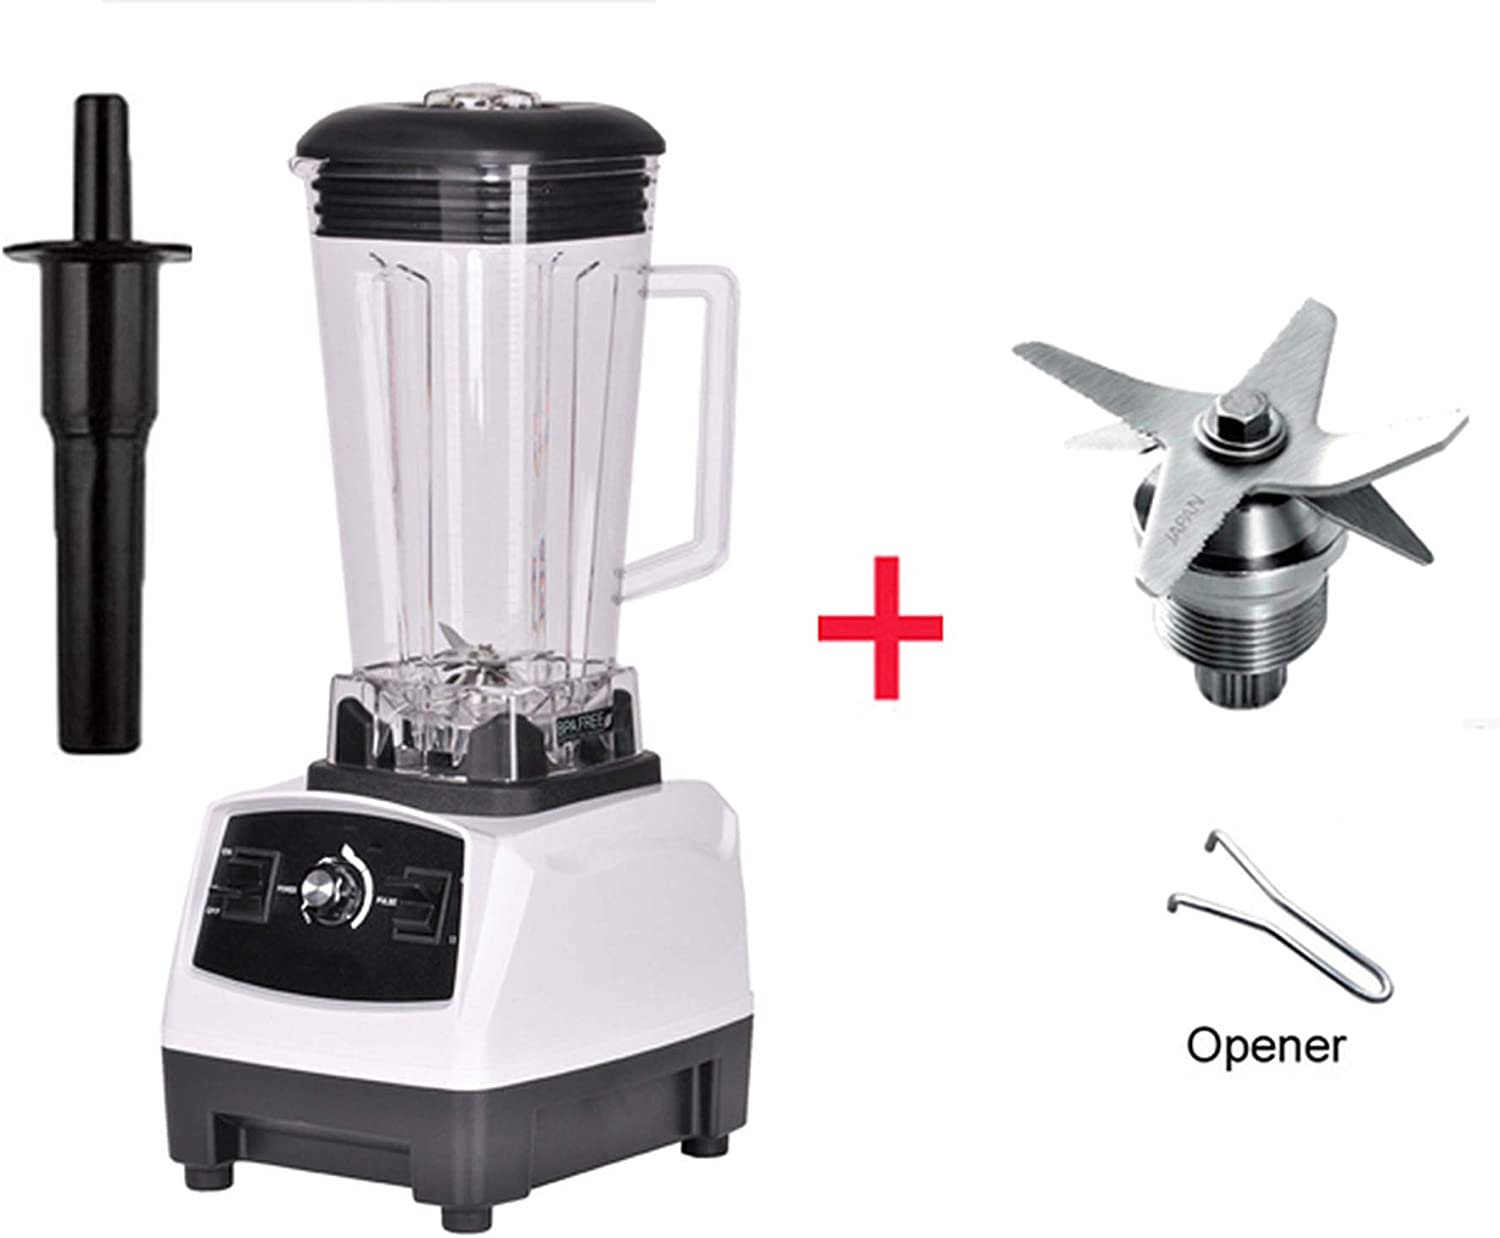 2200W BPA FREE 3HP 2L G5200 high power commercial home professional smoothies power blender food mixer juicer fruit processor,WHITE BLADES TOOL